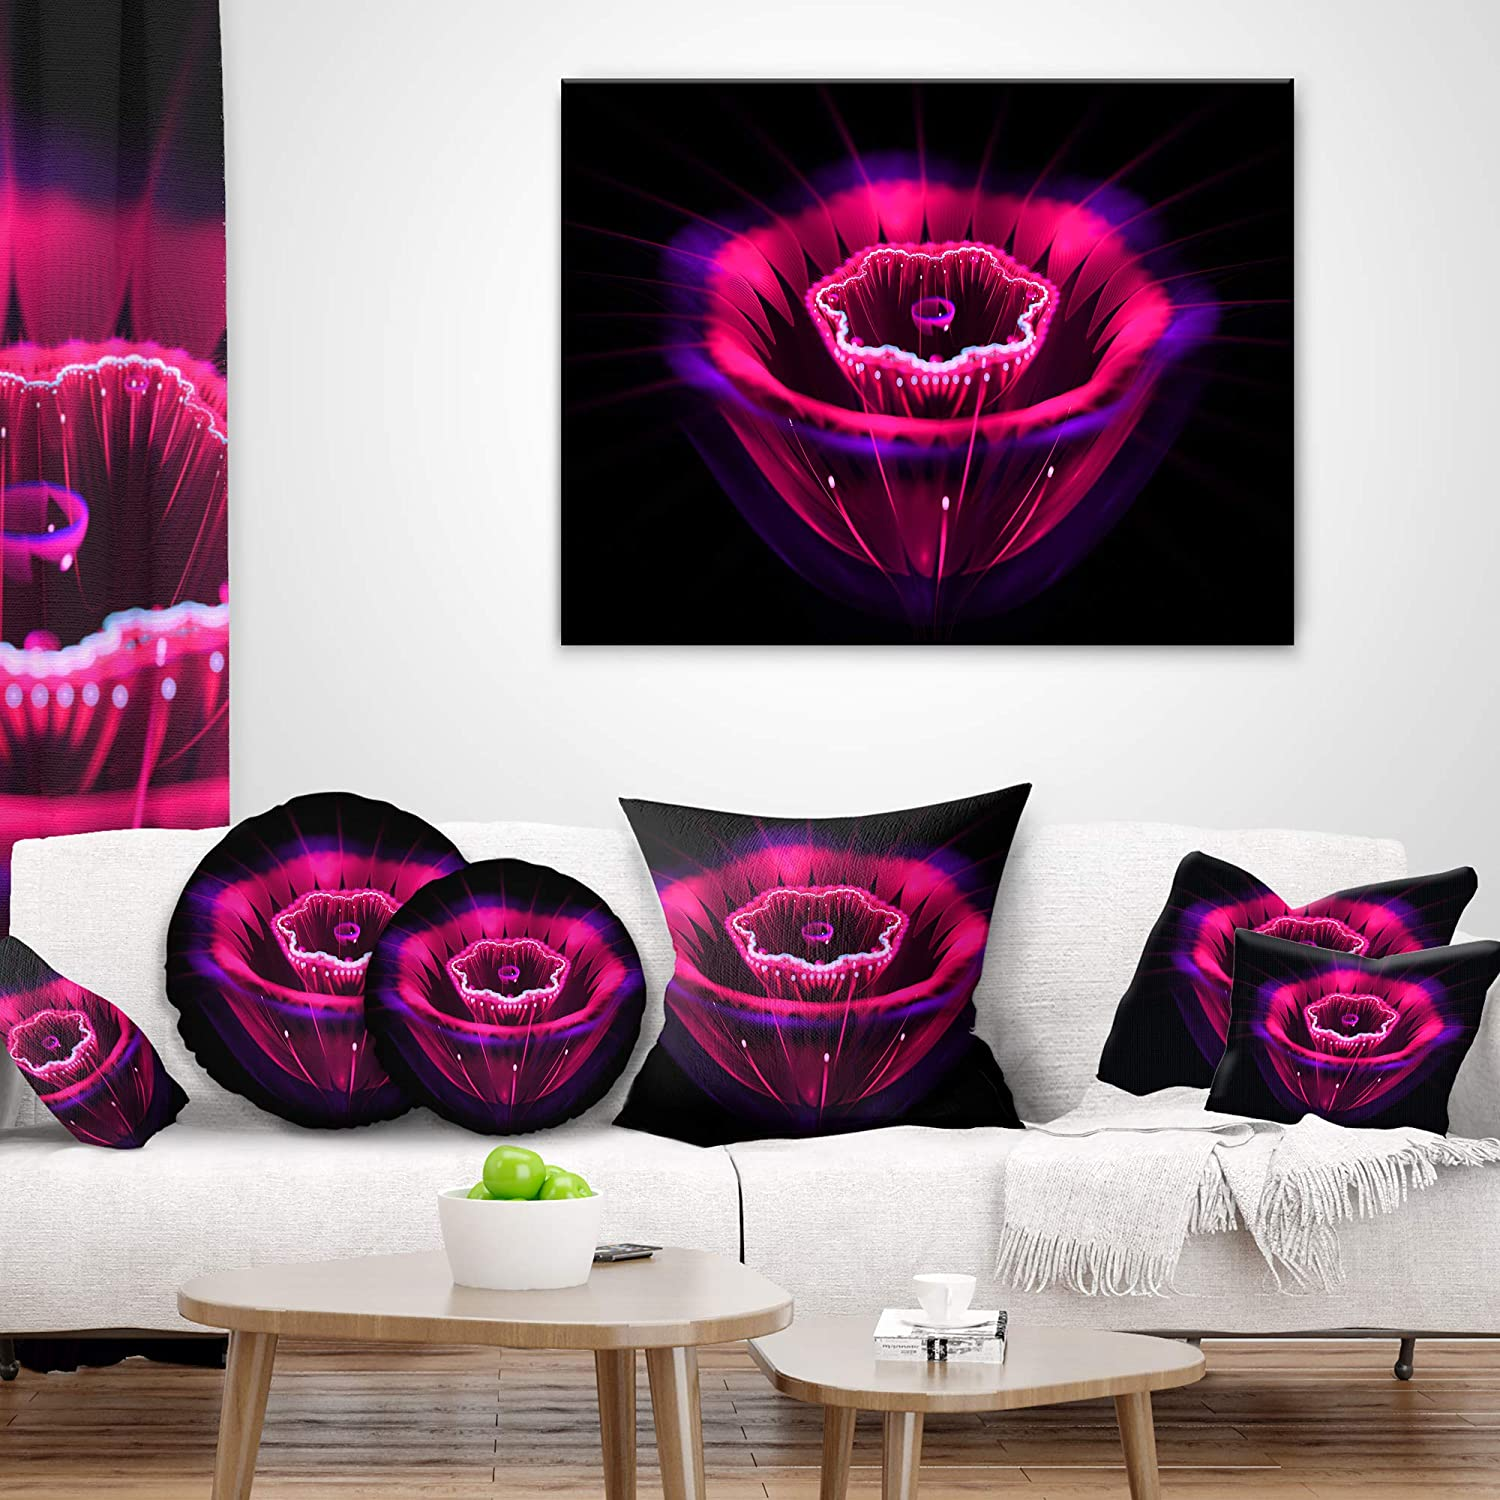 Designart CU13212-26-26 Abstract Magenta Fractal Flower Floral Cushion Cover for Living Room Sofa Throw Pillow 26 x 26